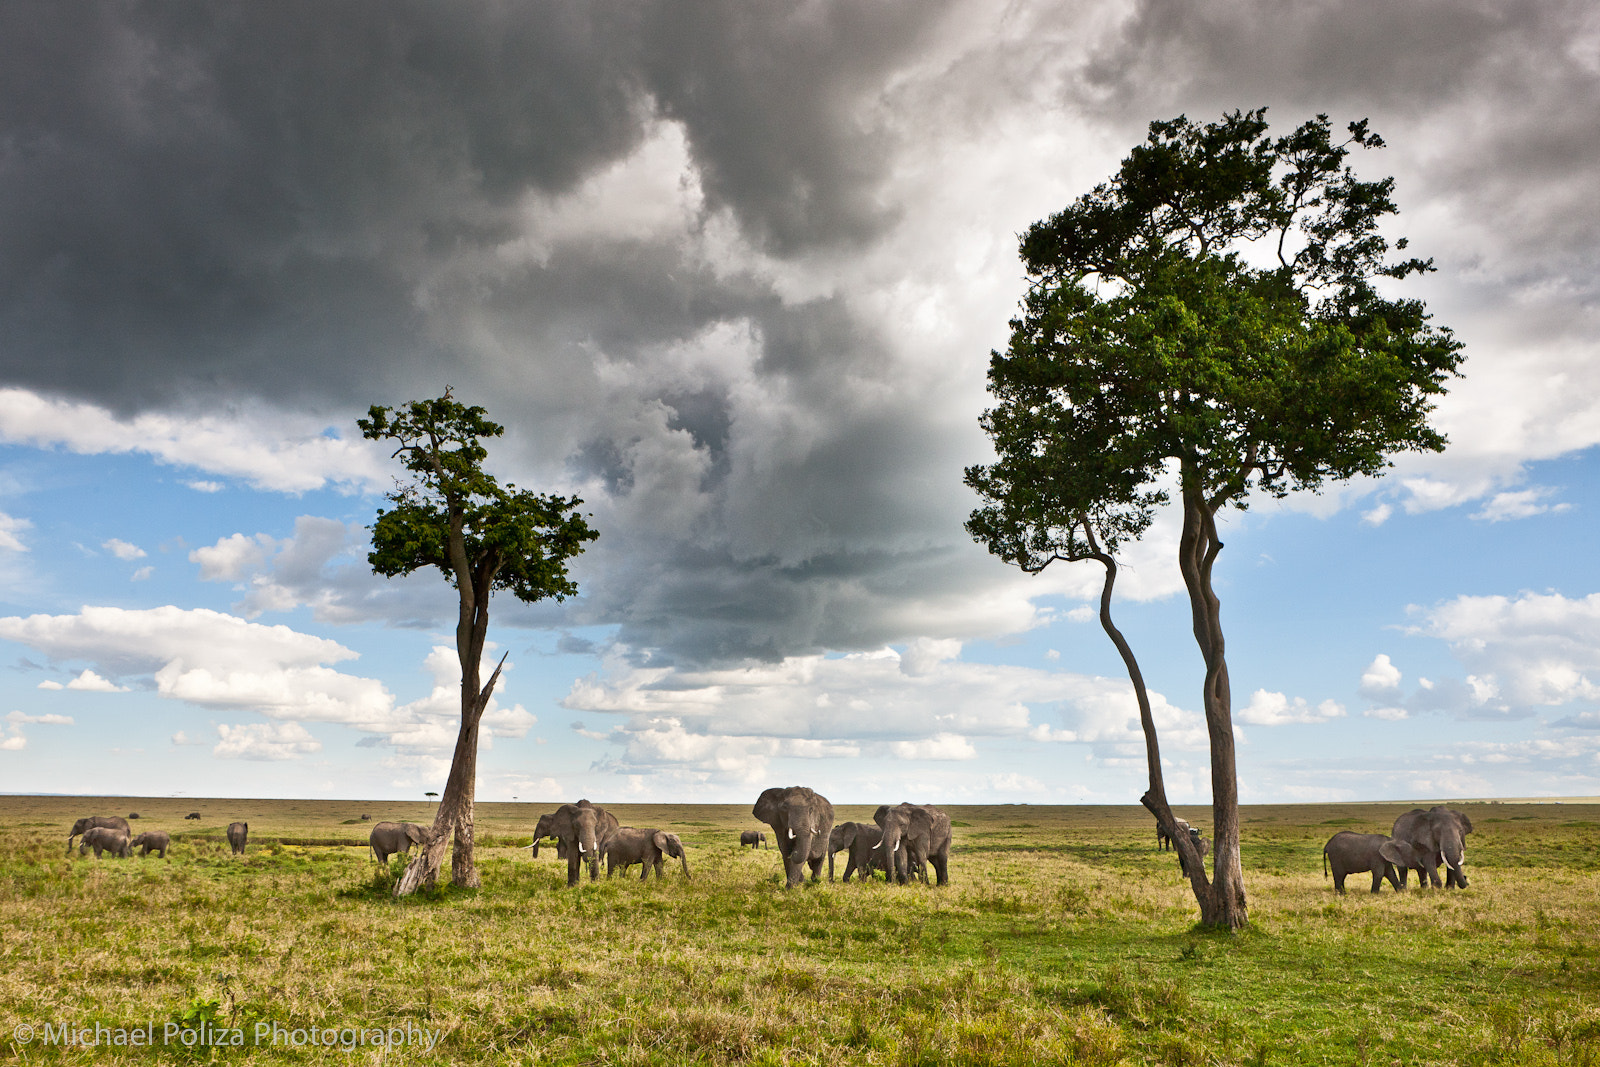 Photograph Elephant Herd by Michael Poliza on 500px